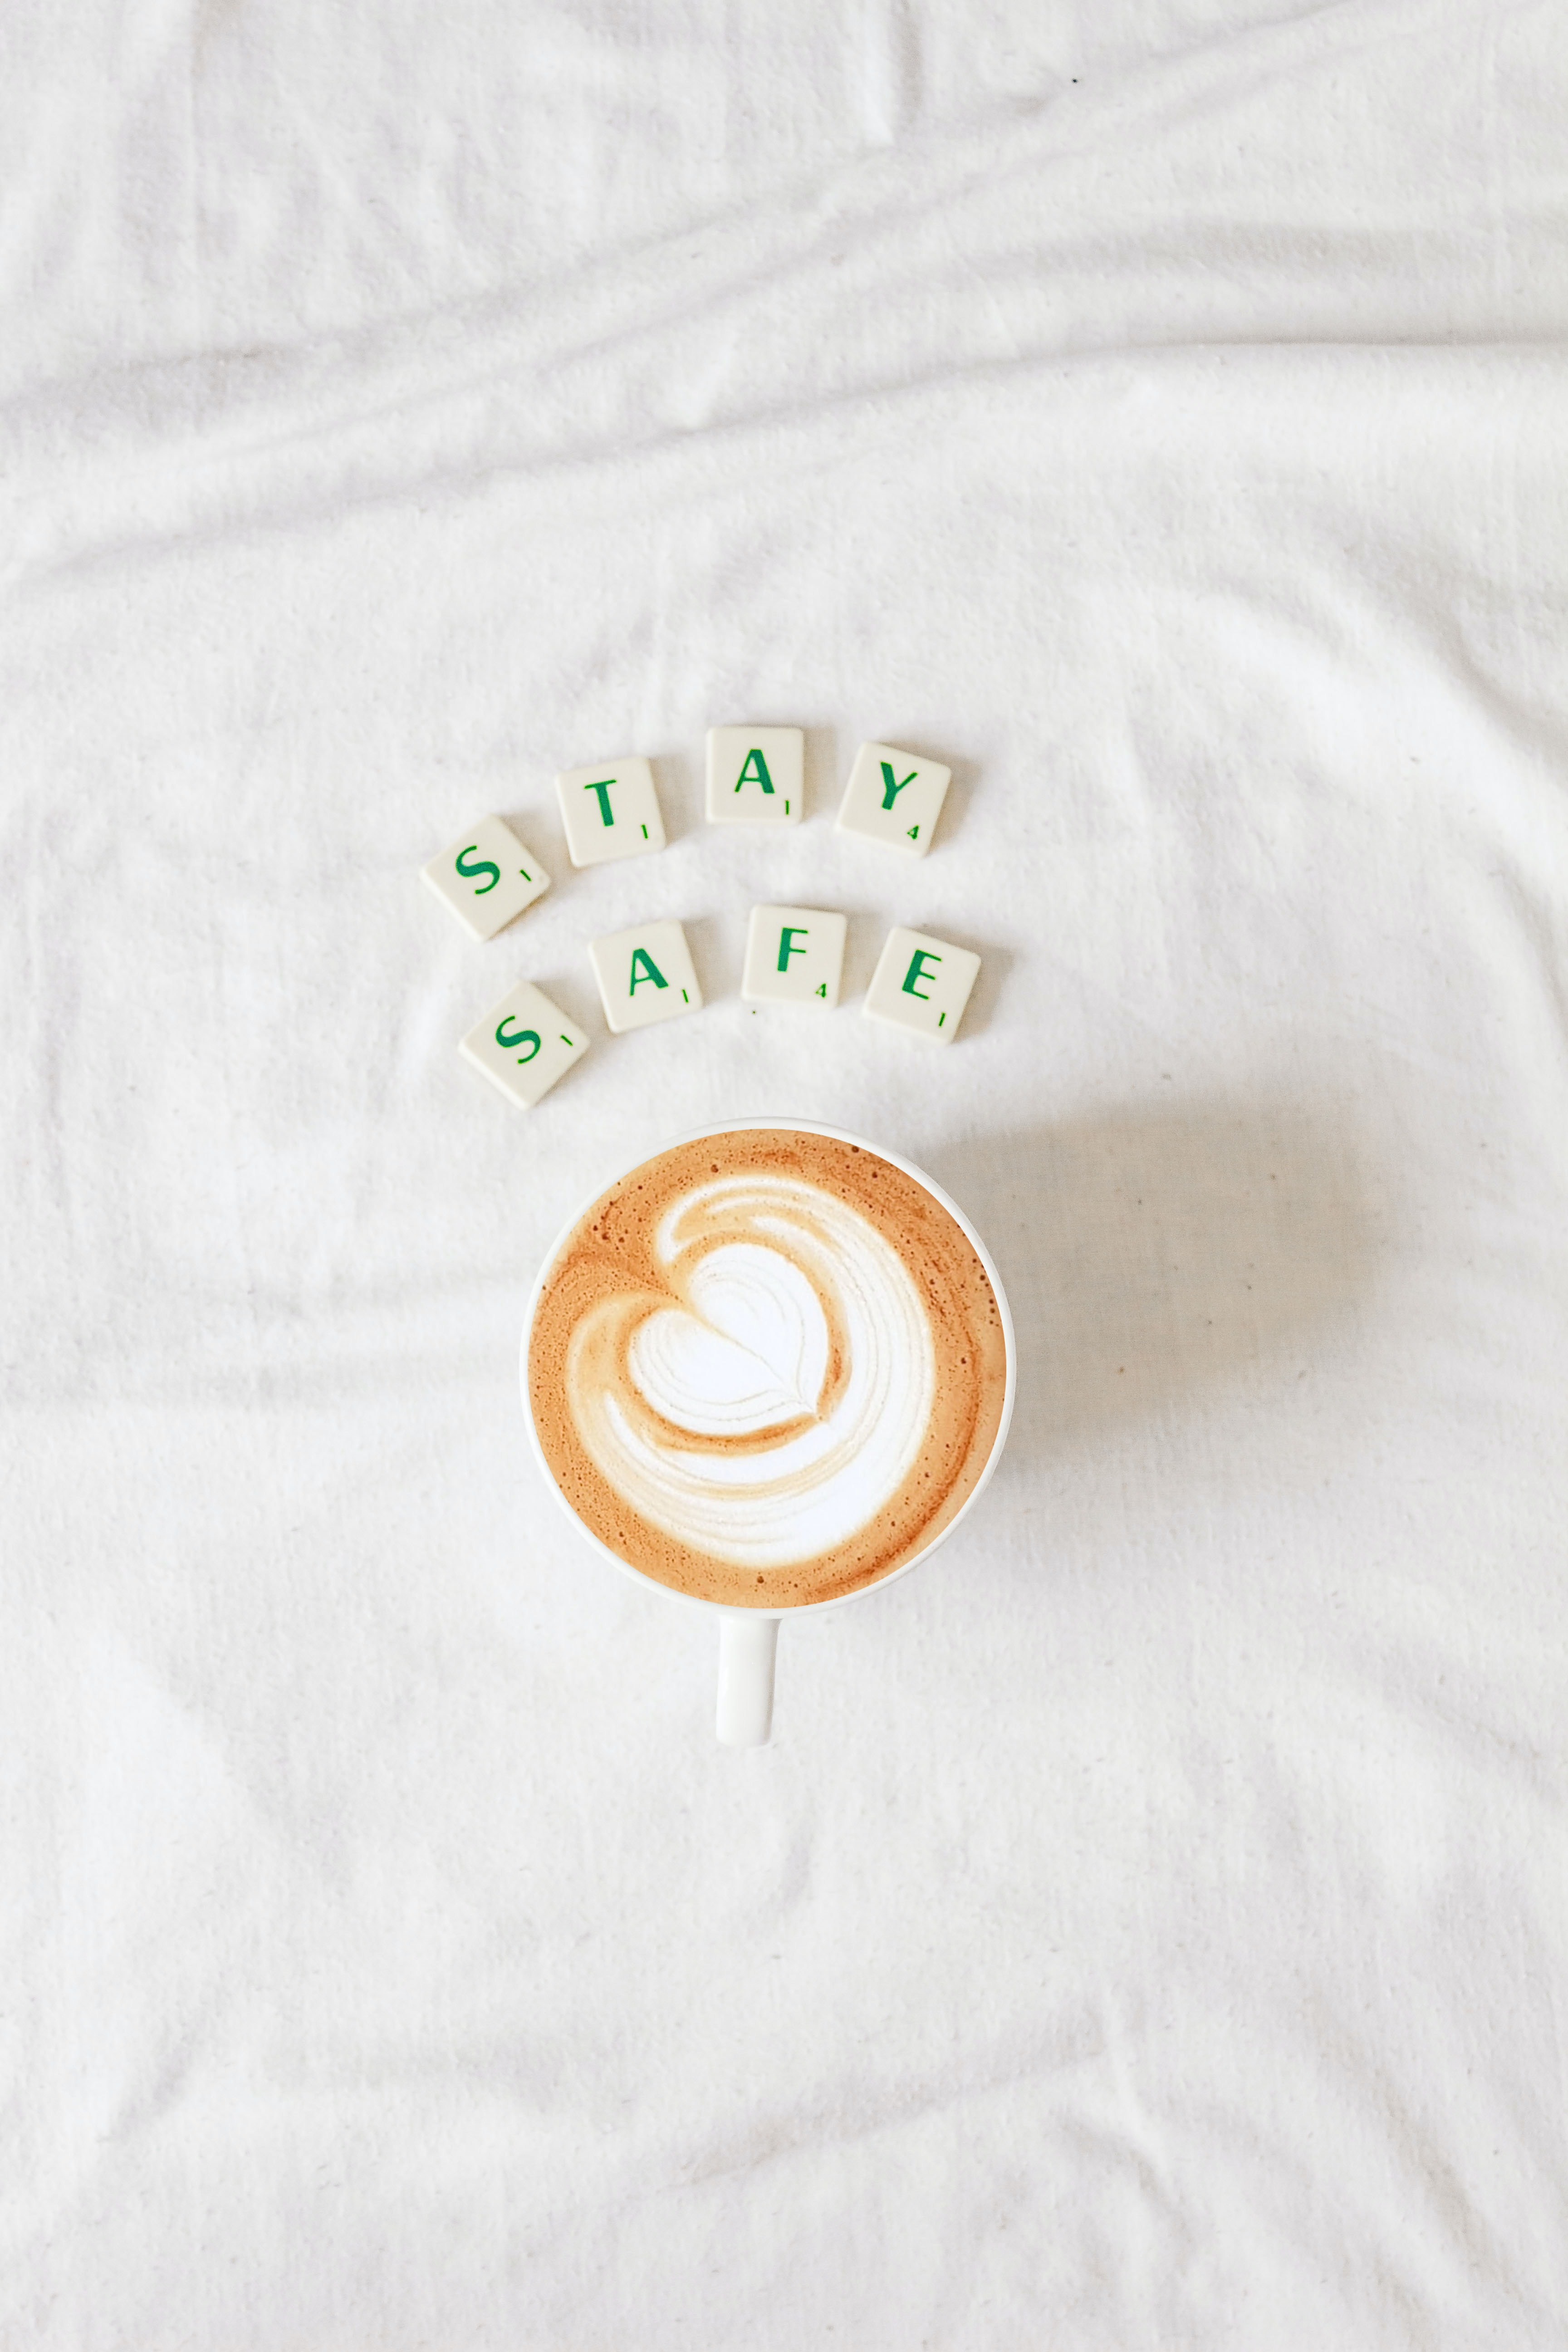 coffee with puzzle piece saying stay safe.